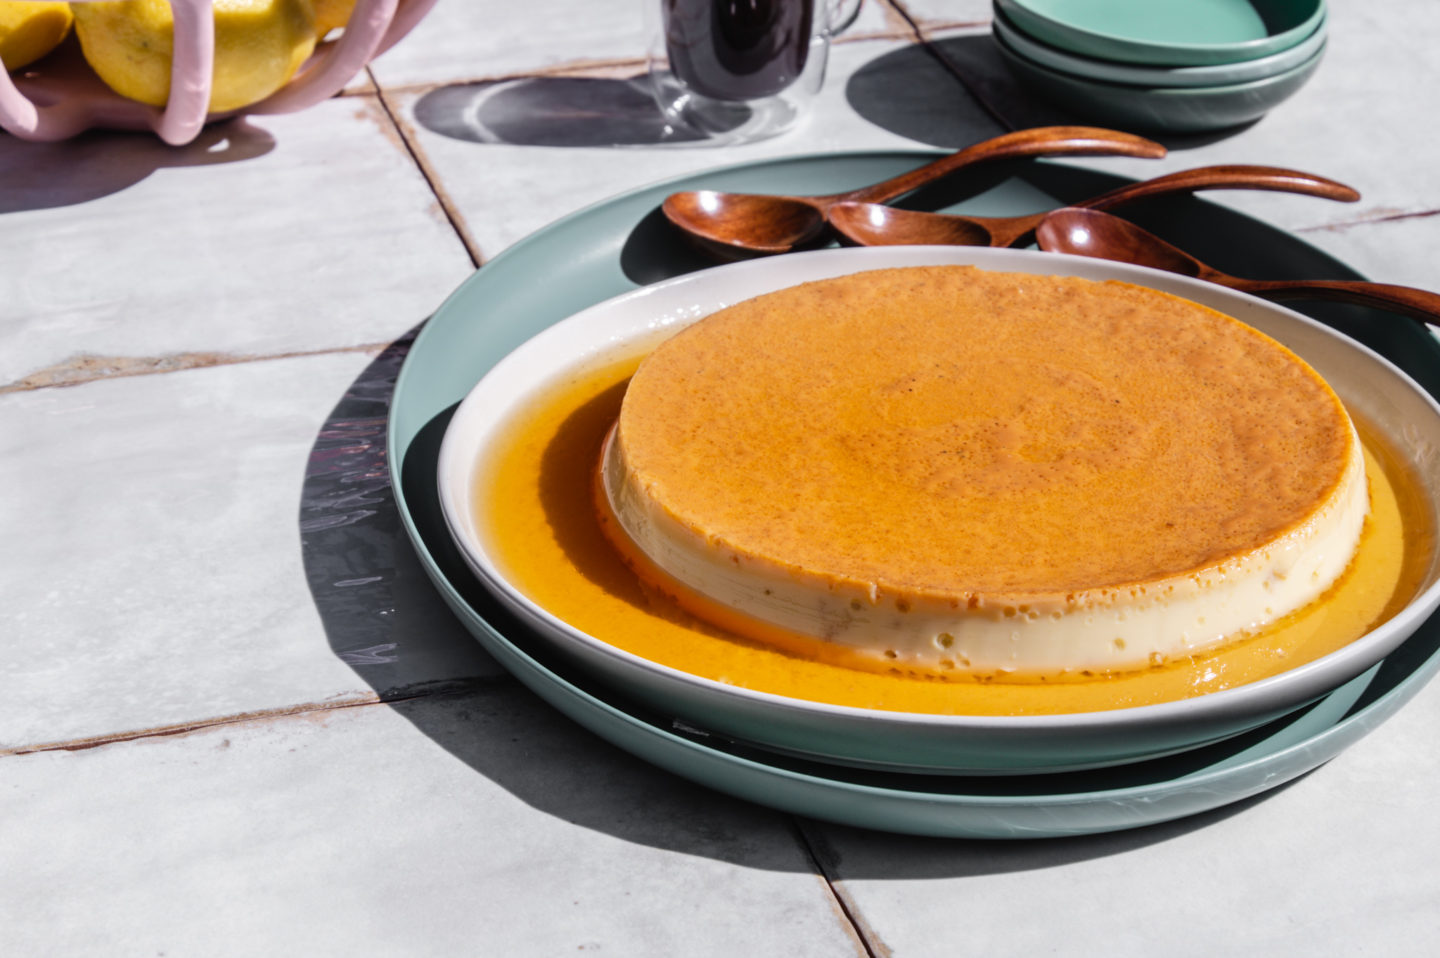 creme caramel is a simple firm set custard with a sticky caramel topping